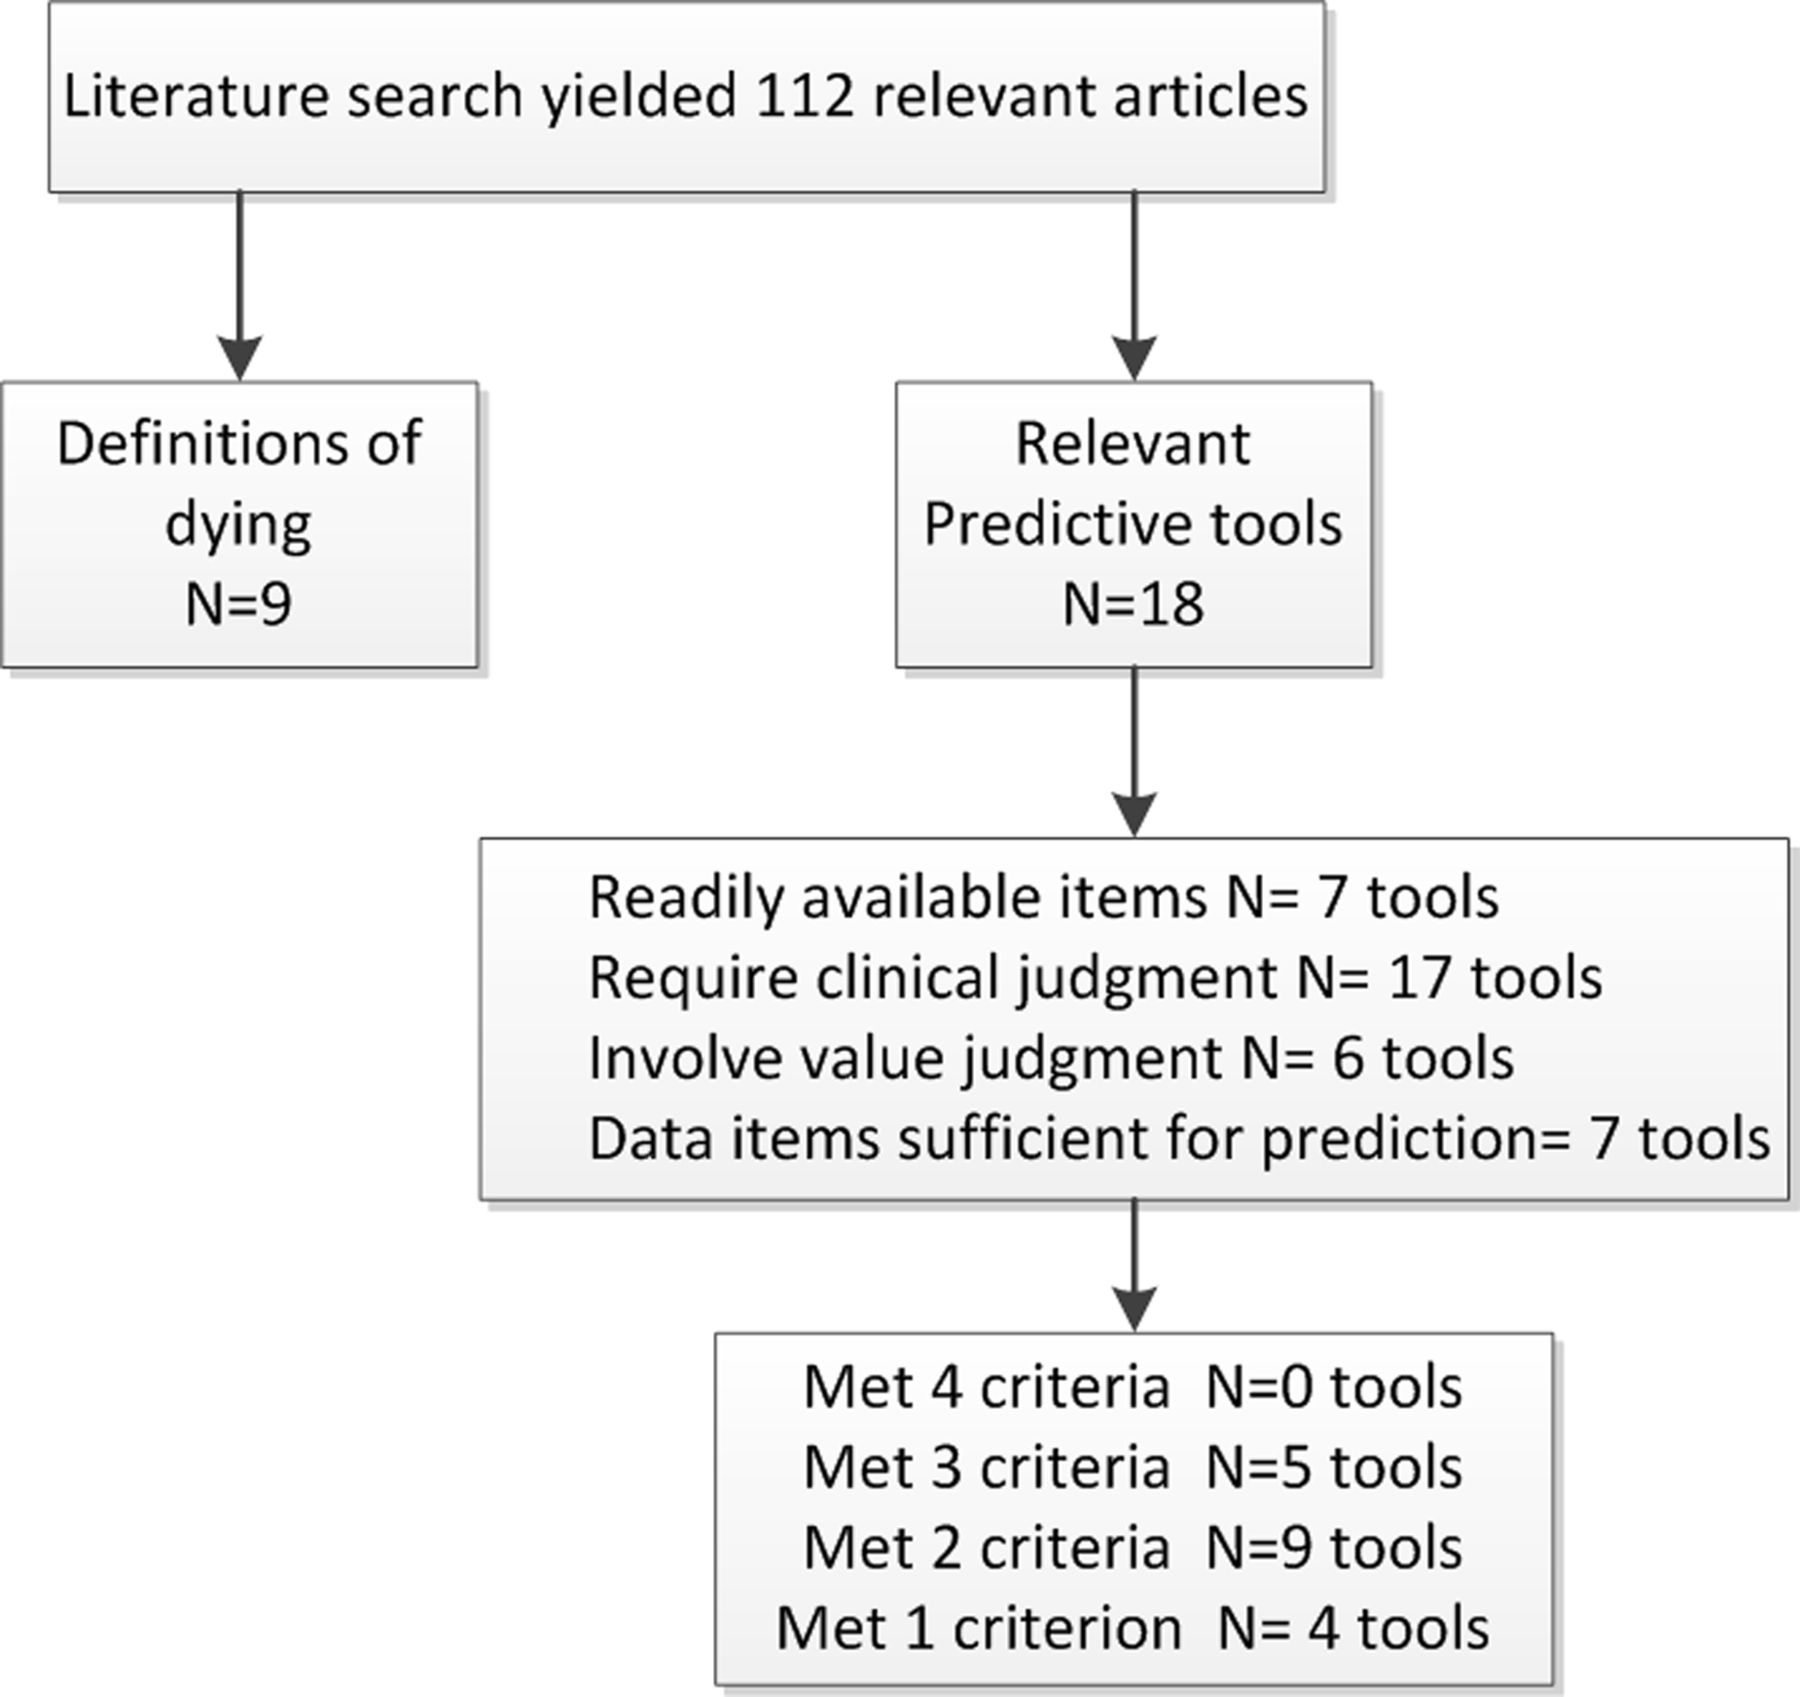 Development of a tool for defining and identifying the dying